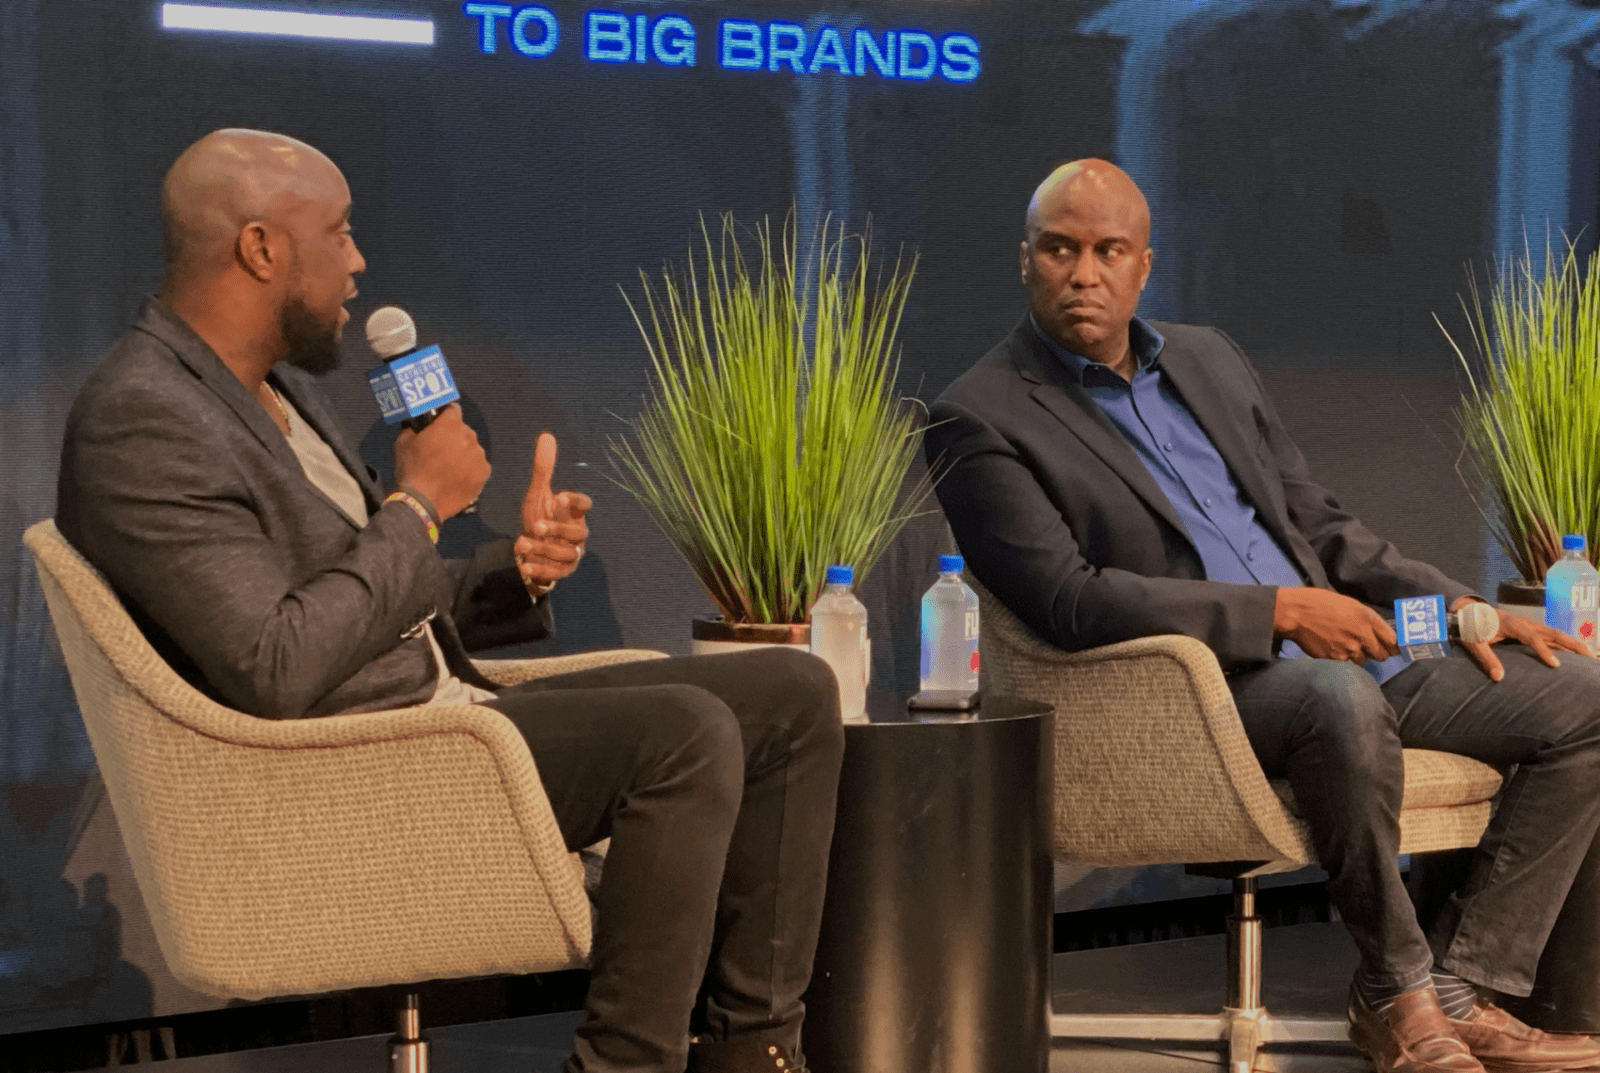 How to Provide Value to Big Brands